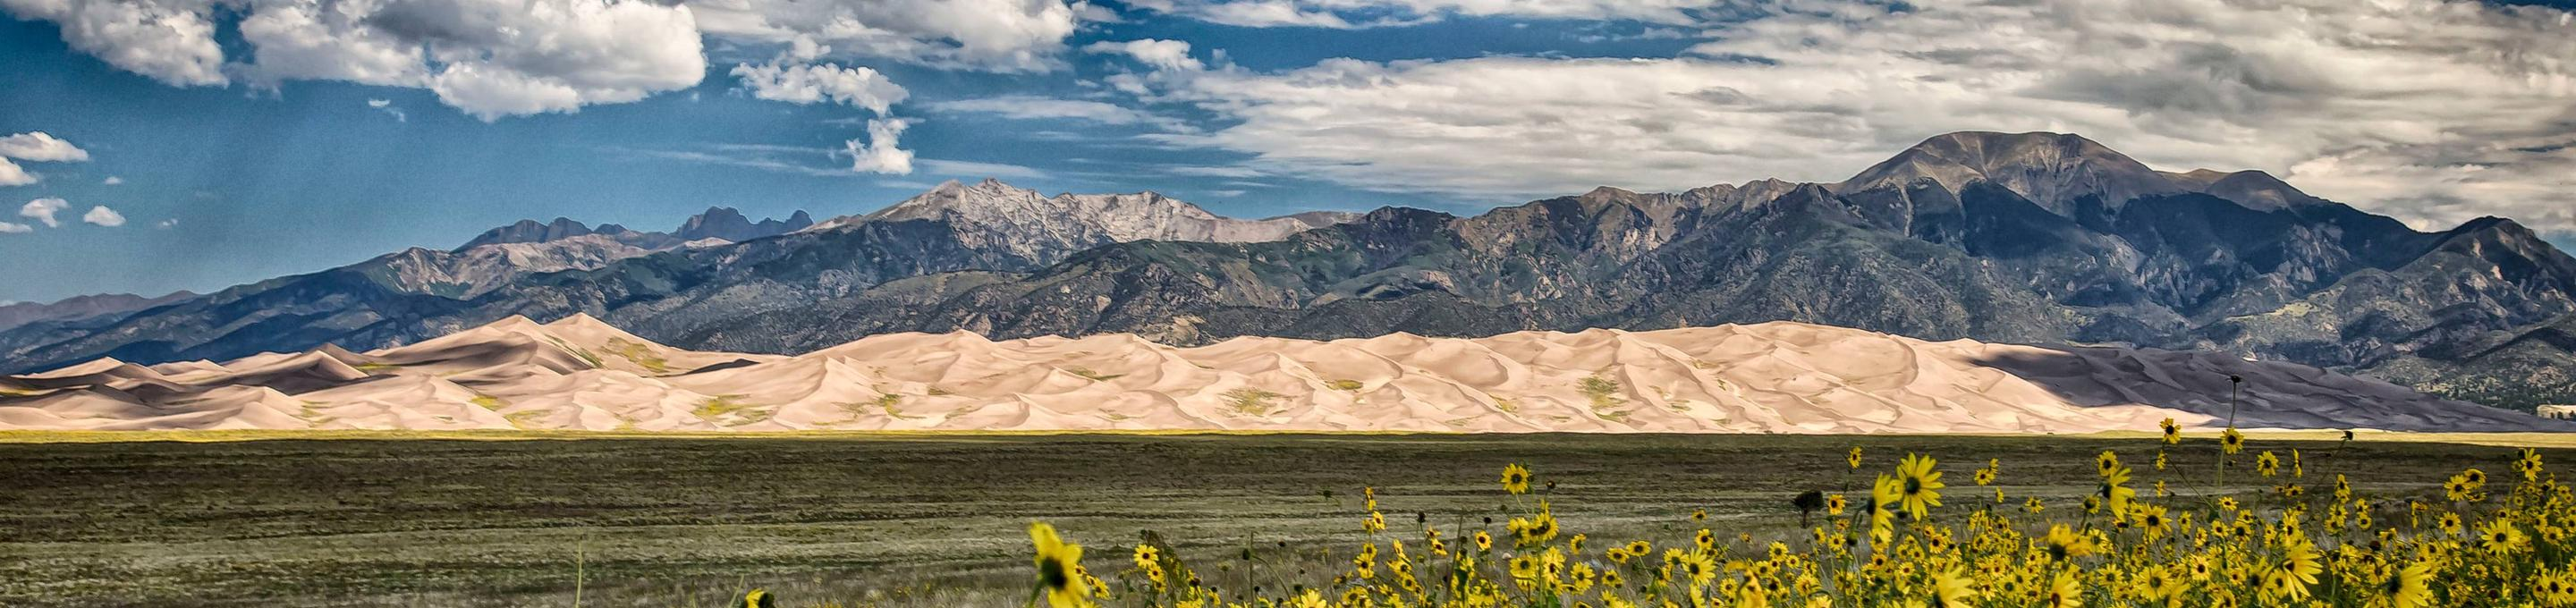 Great Sand Dunes National ParkPinon Great Sand Dunes National Park